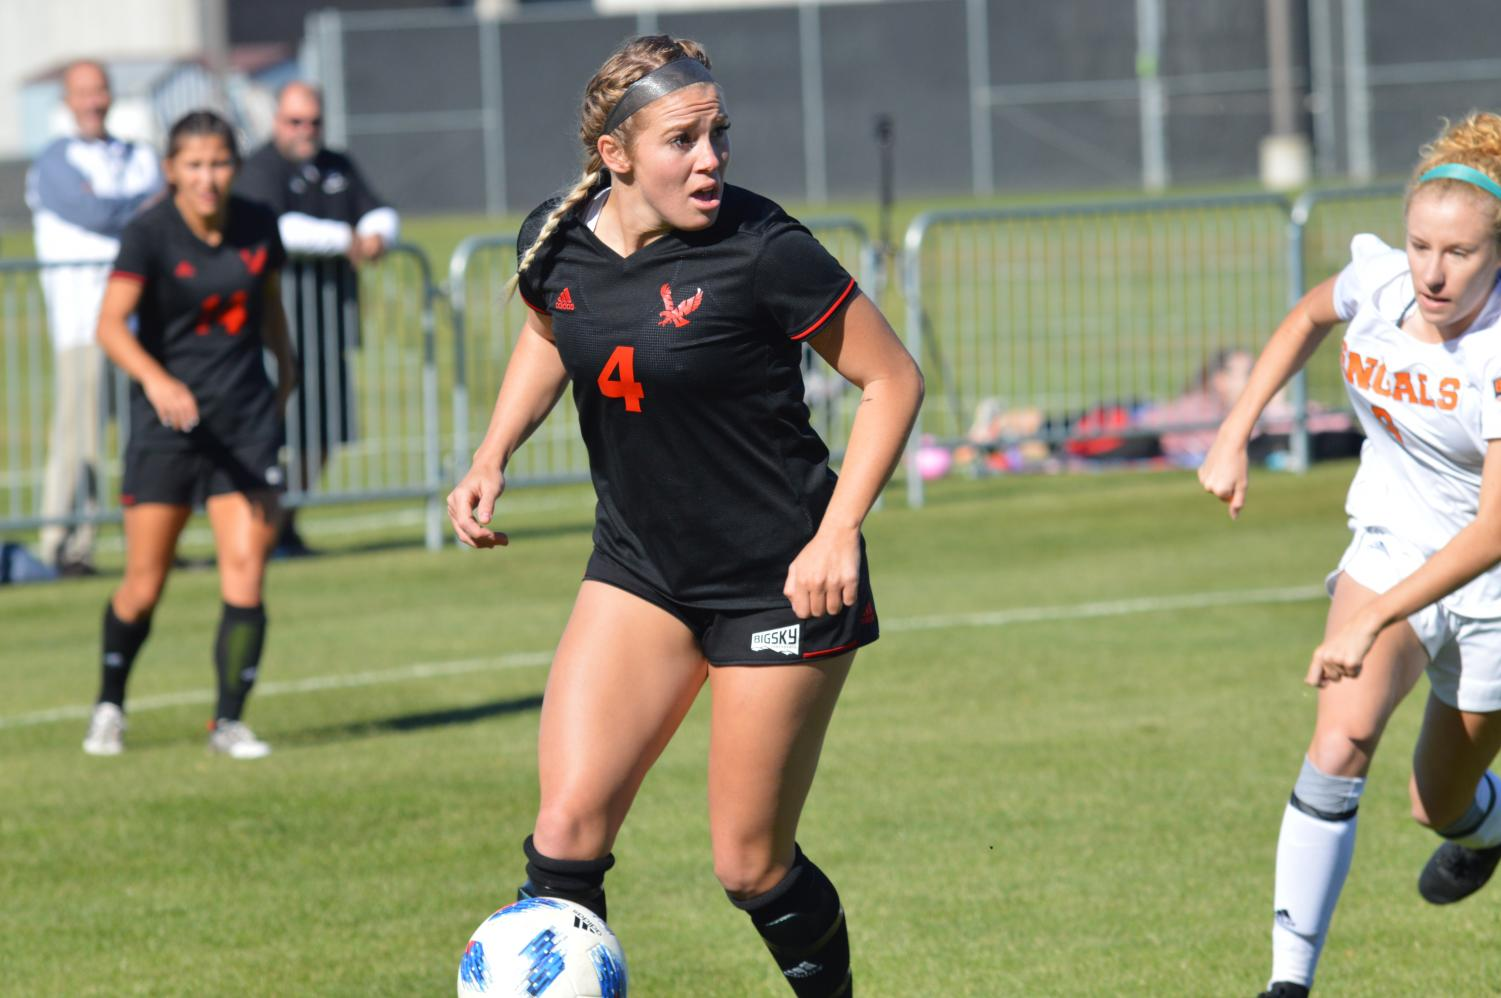 Senior Allison Raniere during Sunday's senior day victory over Idaho State. Raniere scored a goal and had two assists in the win. | Bailey Monteith for The Easterner